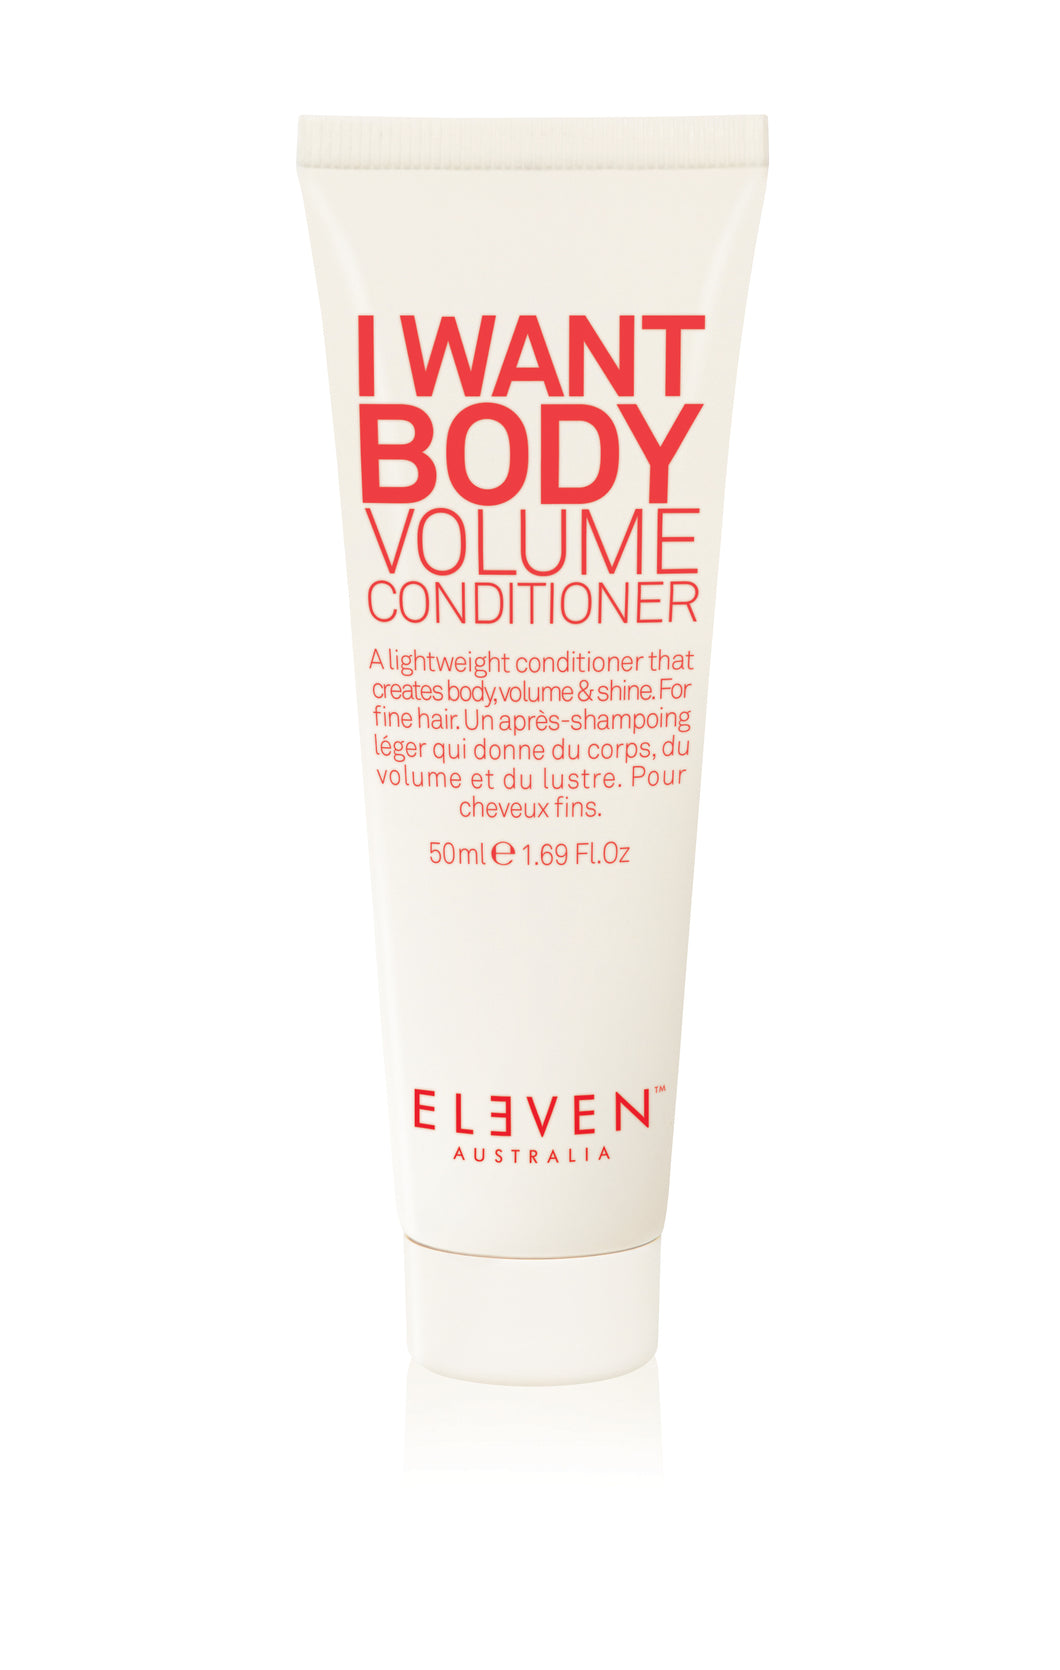 I Want Body Volume Conditioner 50ml